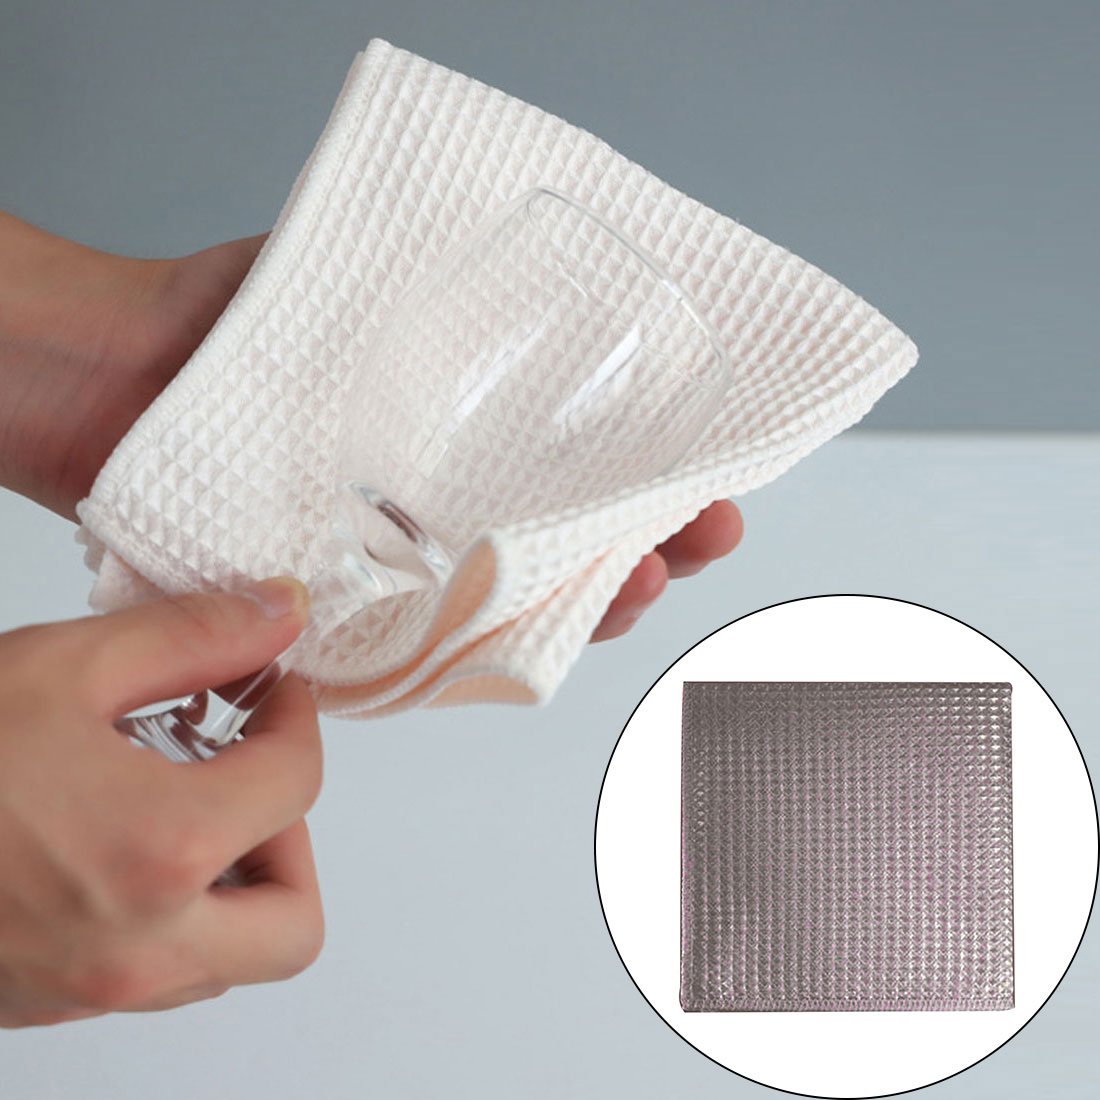 5pcs microfiber cleaning towel super absorbable window glass cleaning cloth kitchen anti grease wiping rags washing dish cloth 2pcs Anti-grease Wiping Rags Kitchen Efficient Super Absorbent Microfiber Cleaning Cloth Home Washing Dish Cleaning Towel